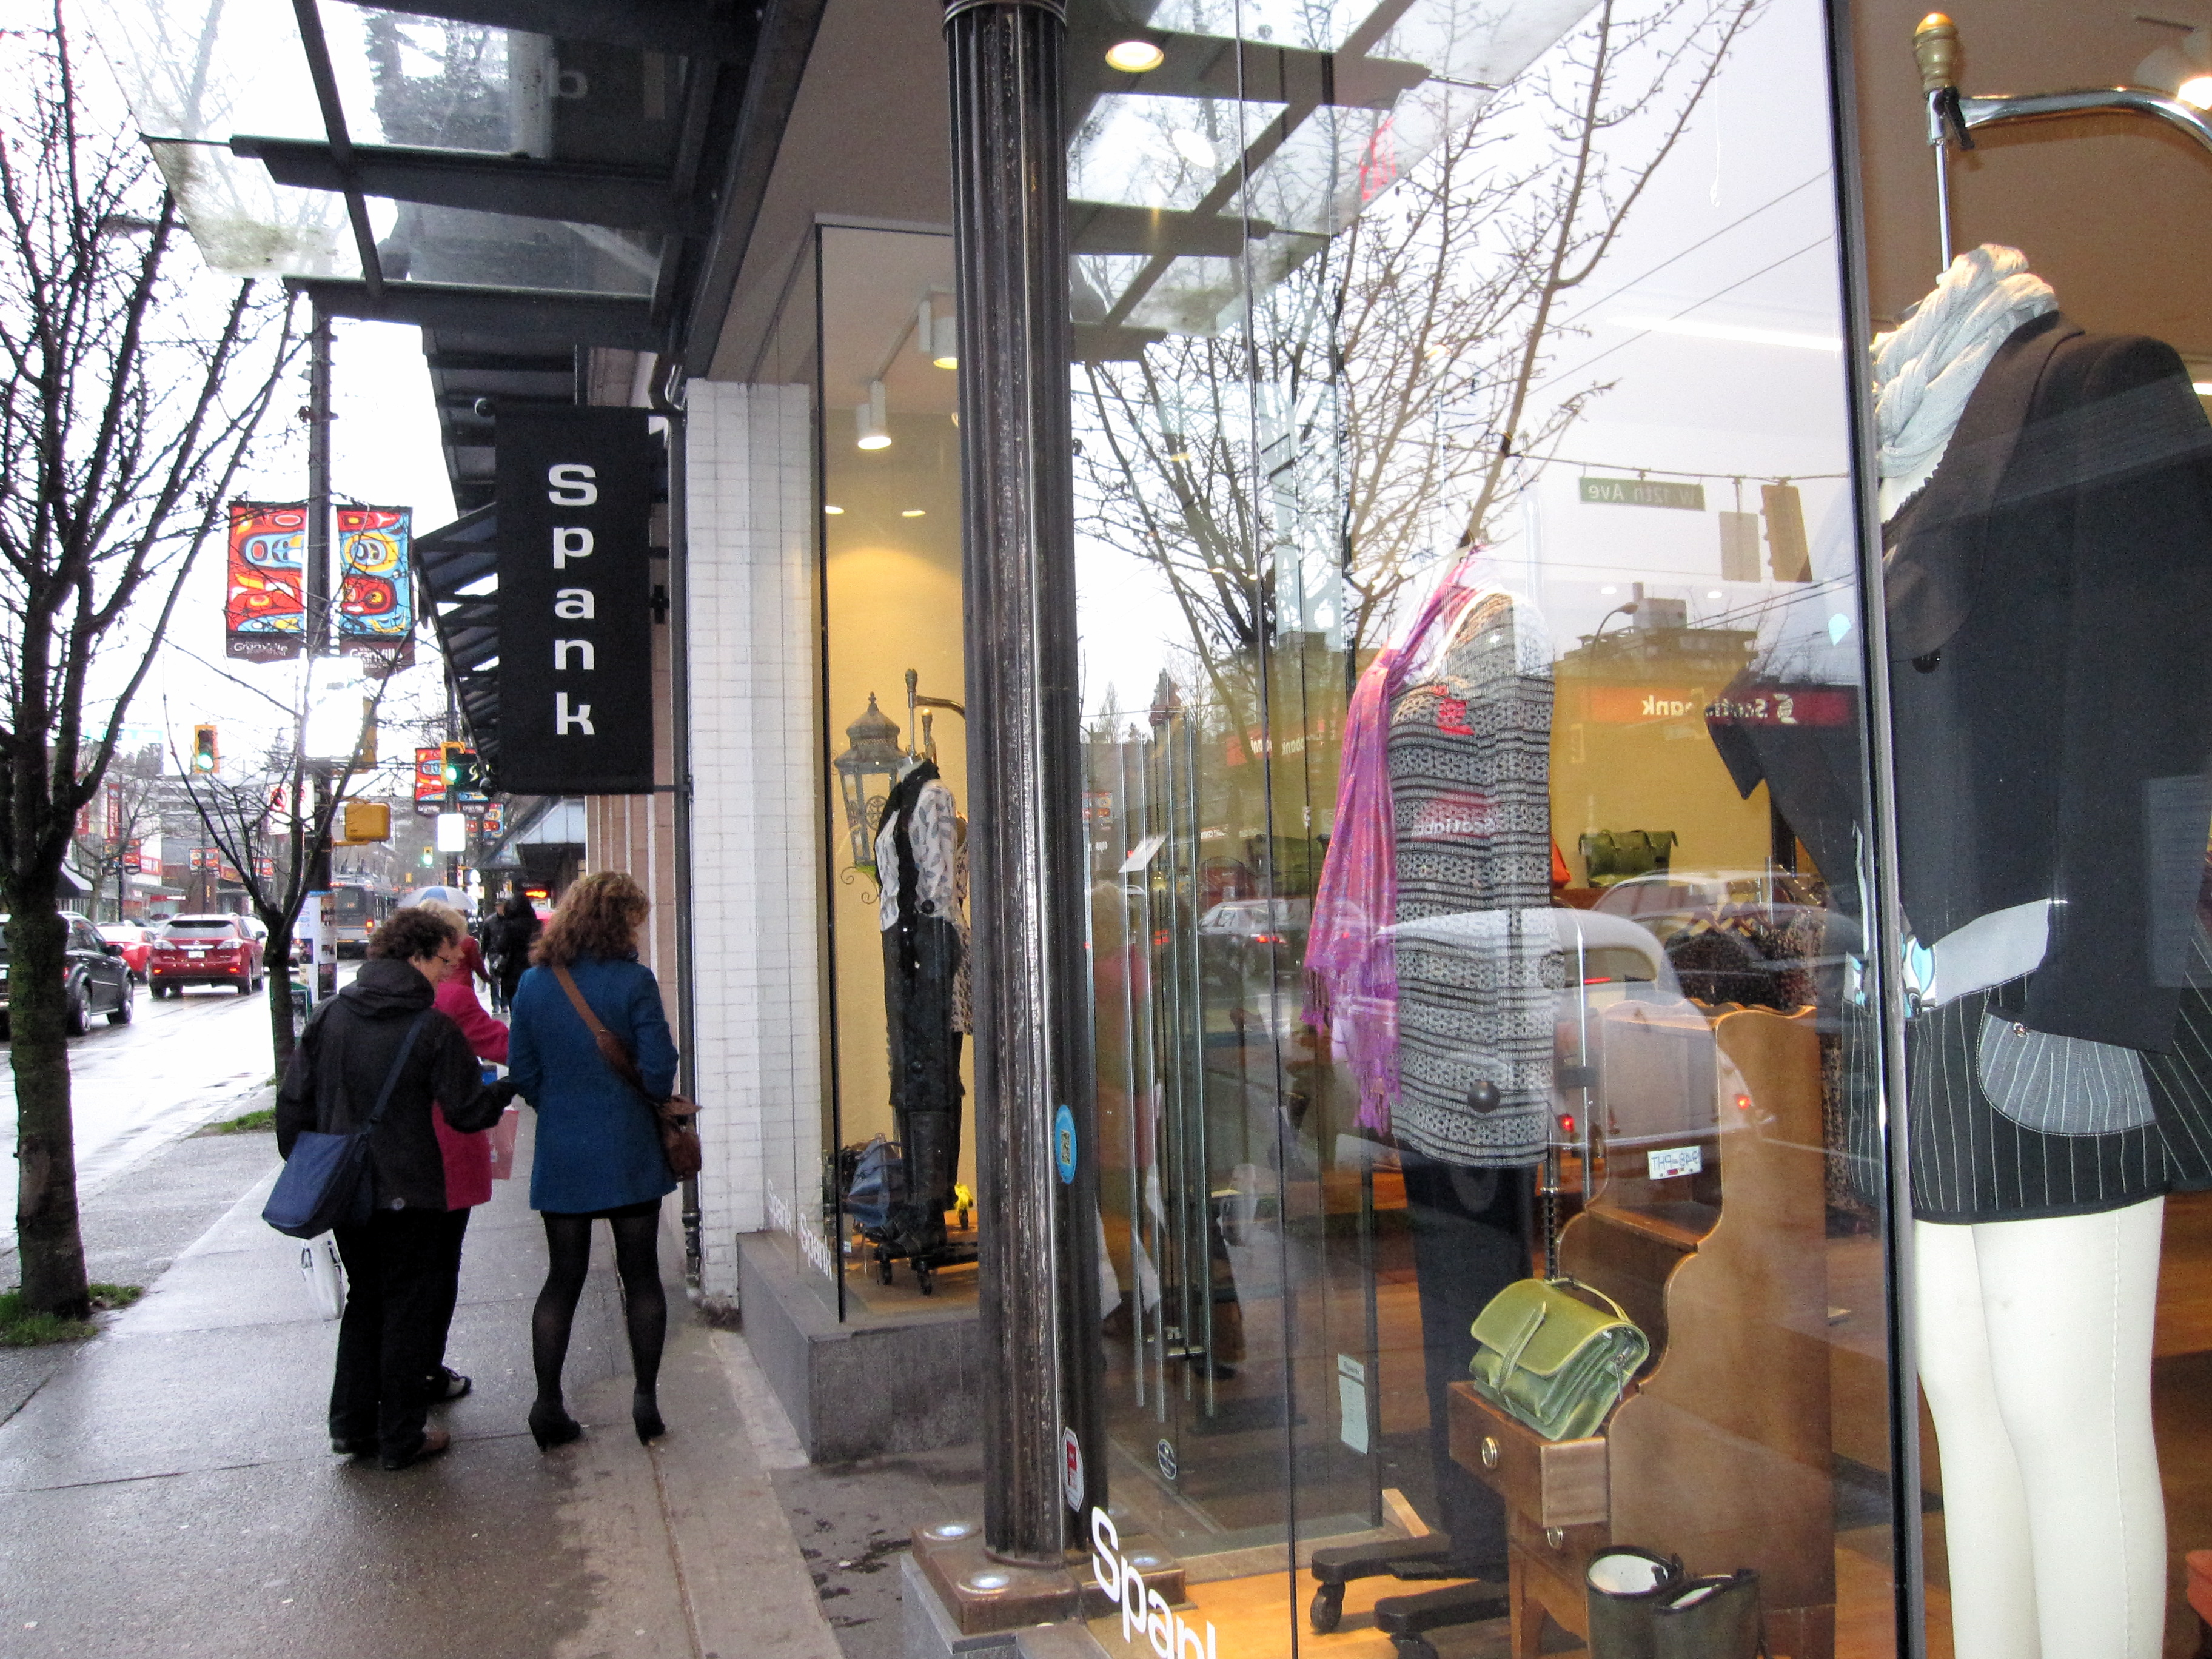 Spank opened a location on South Granville in 2011. Photo: Dana Lynch